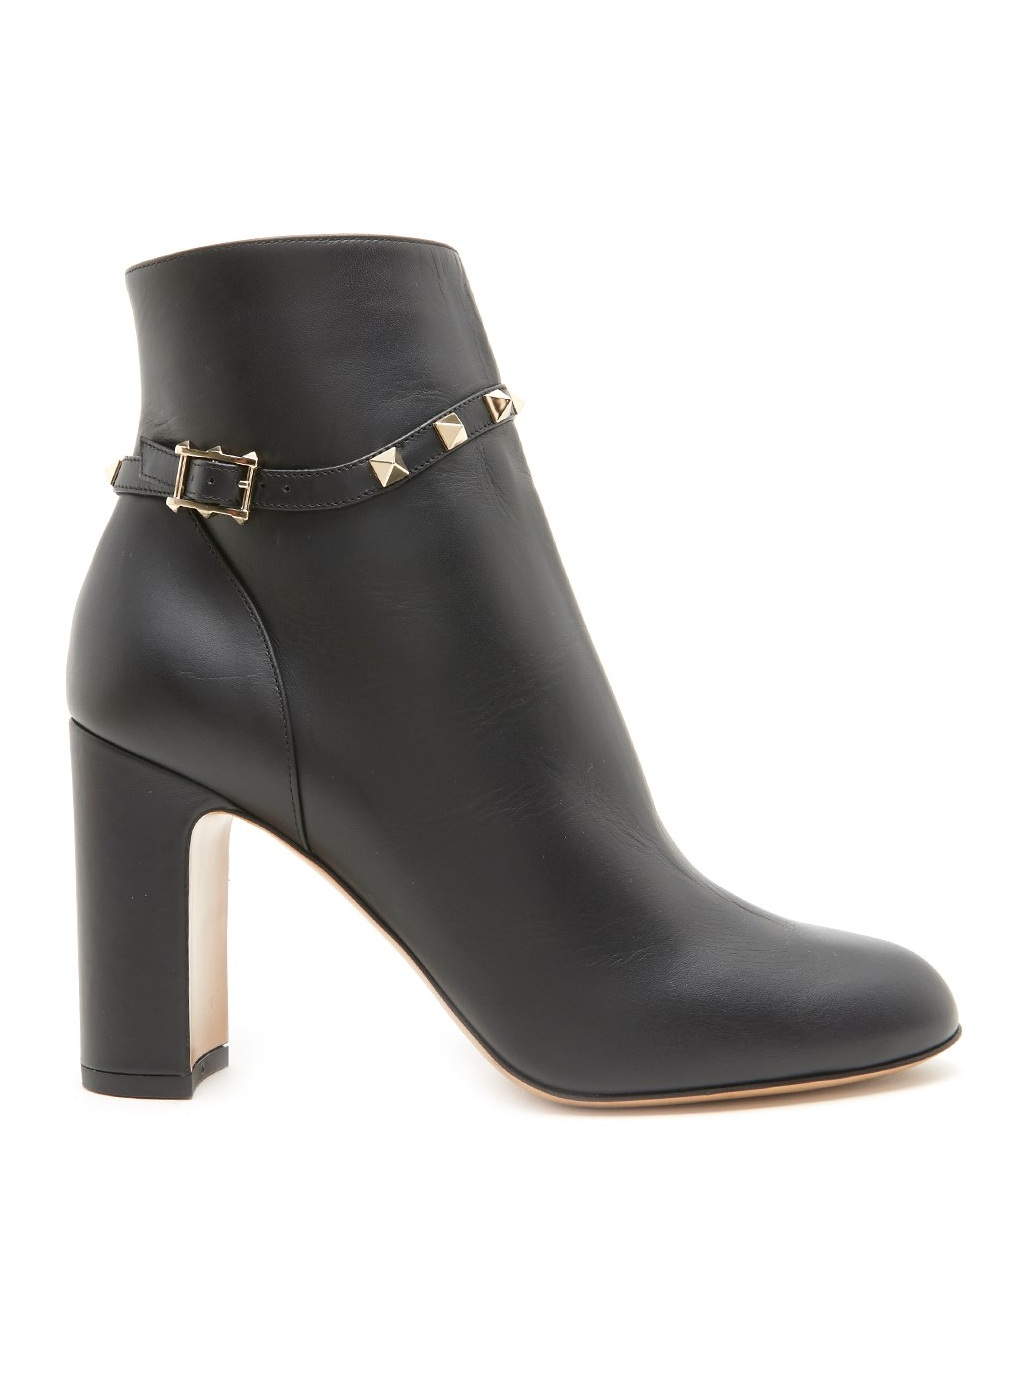 Valentino 'Rockstud' Shoes In Black